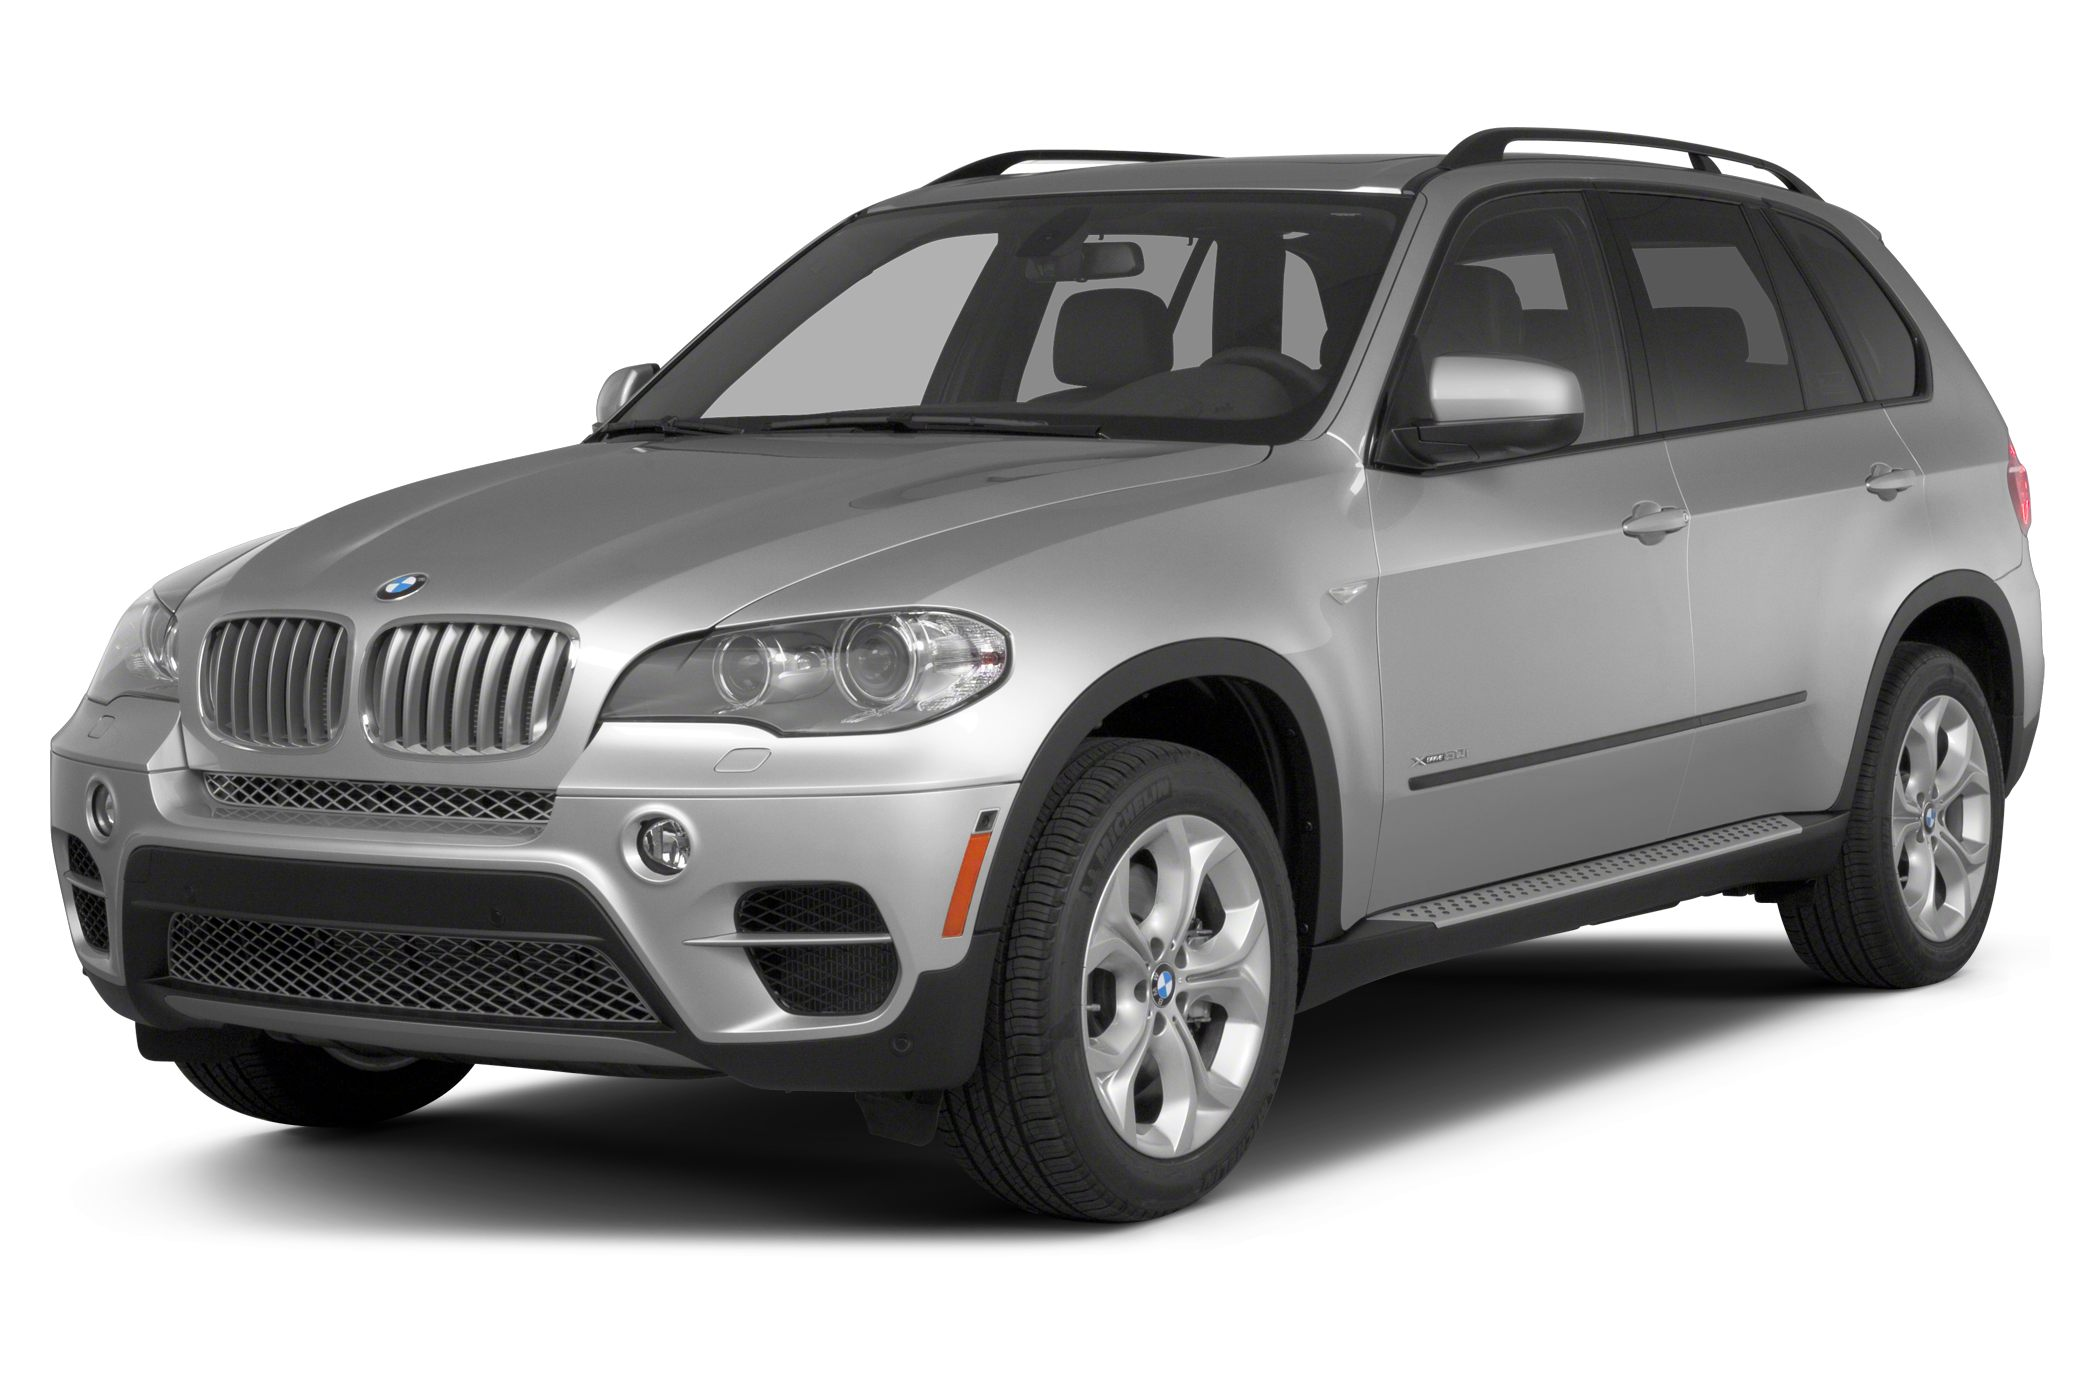 2013 BMW X5 xDrive35i This outstanding X5 with its grippy AWD will handle anything mother nature de